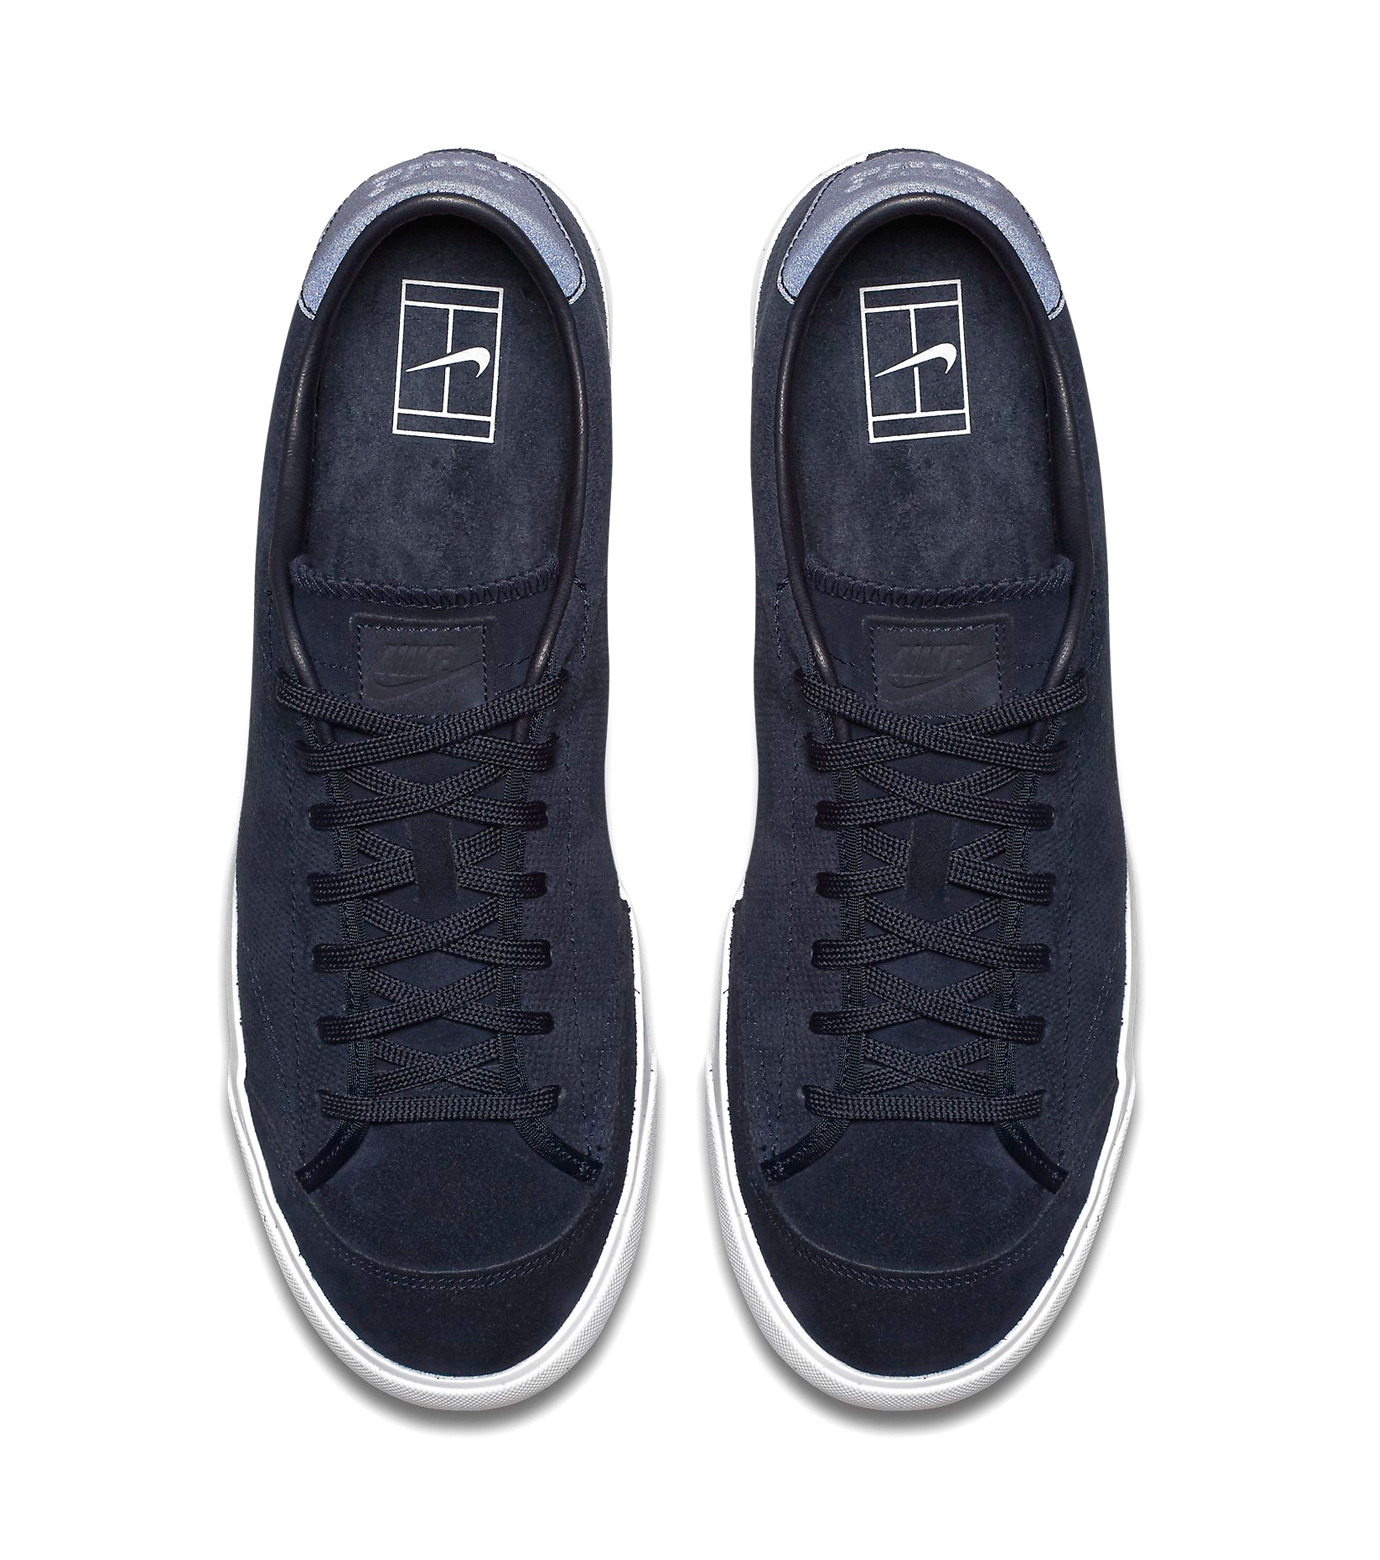 NIKE(ナイキ)のALL COURT 2 LOW-NAVY(シューズ/shoes)-864719-400-93 拡大詳細画像4